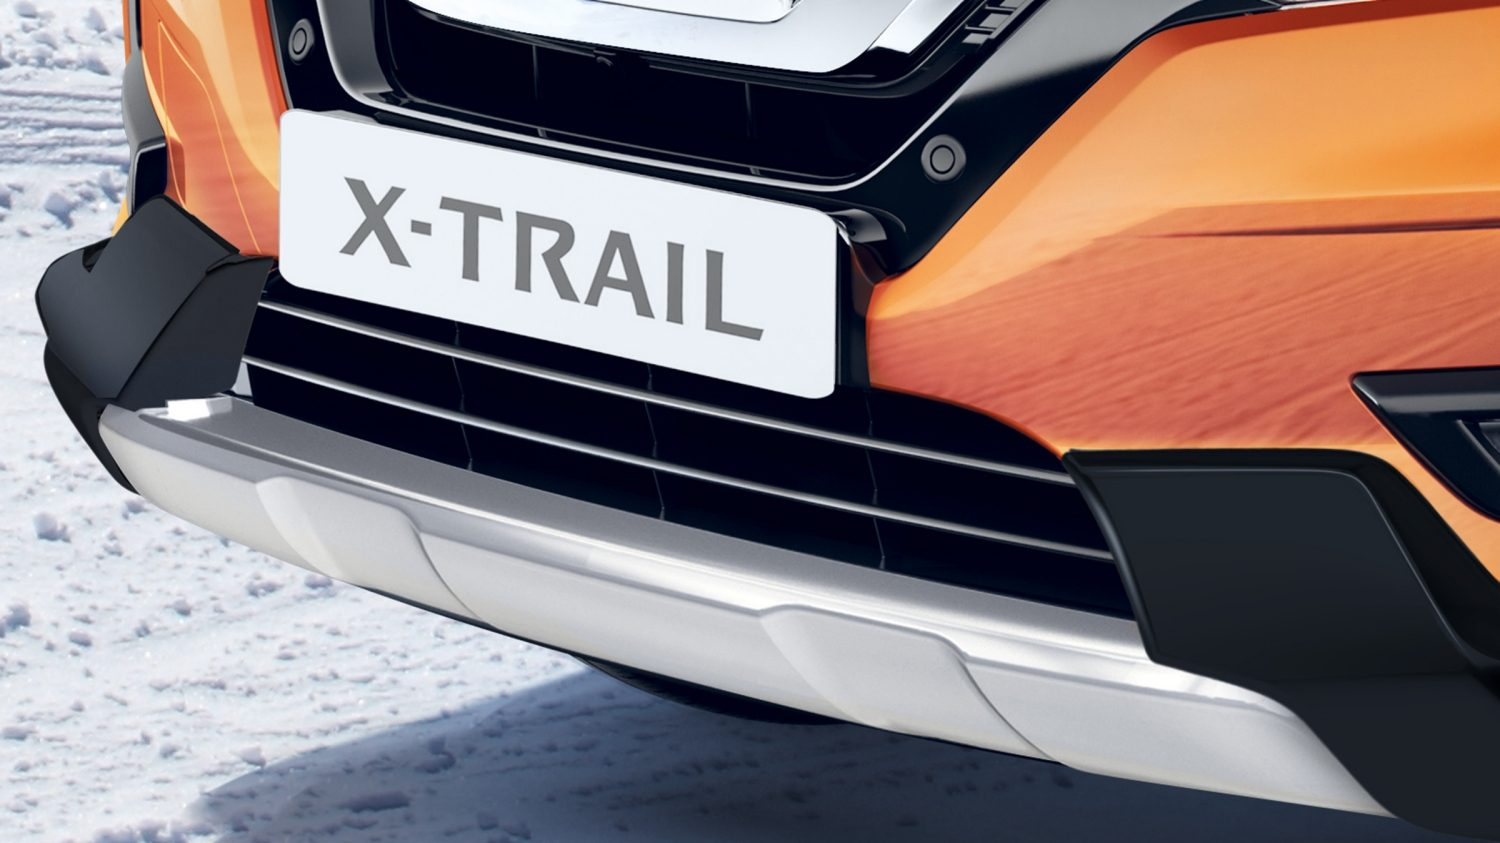 Placa embellecedora frontal con protector de guardabarros del X-Trail